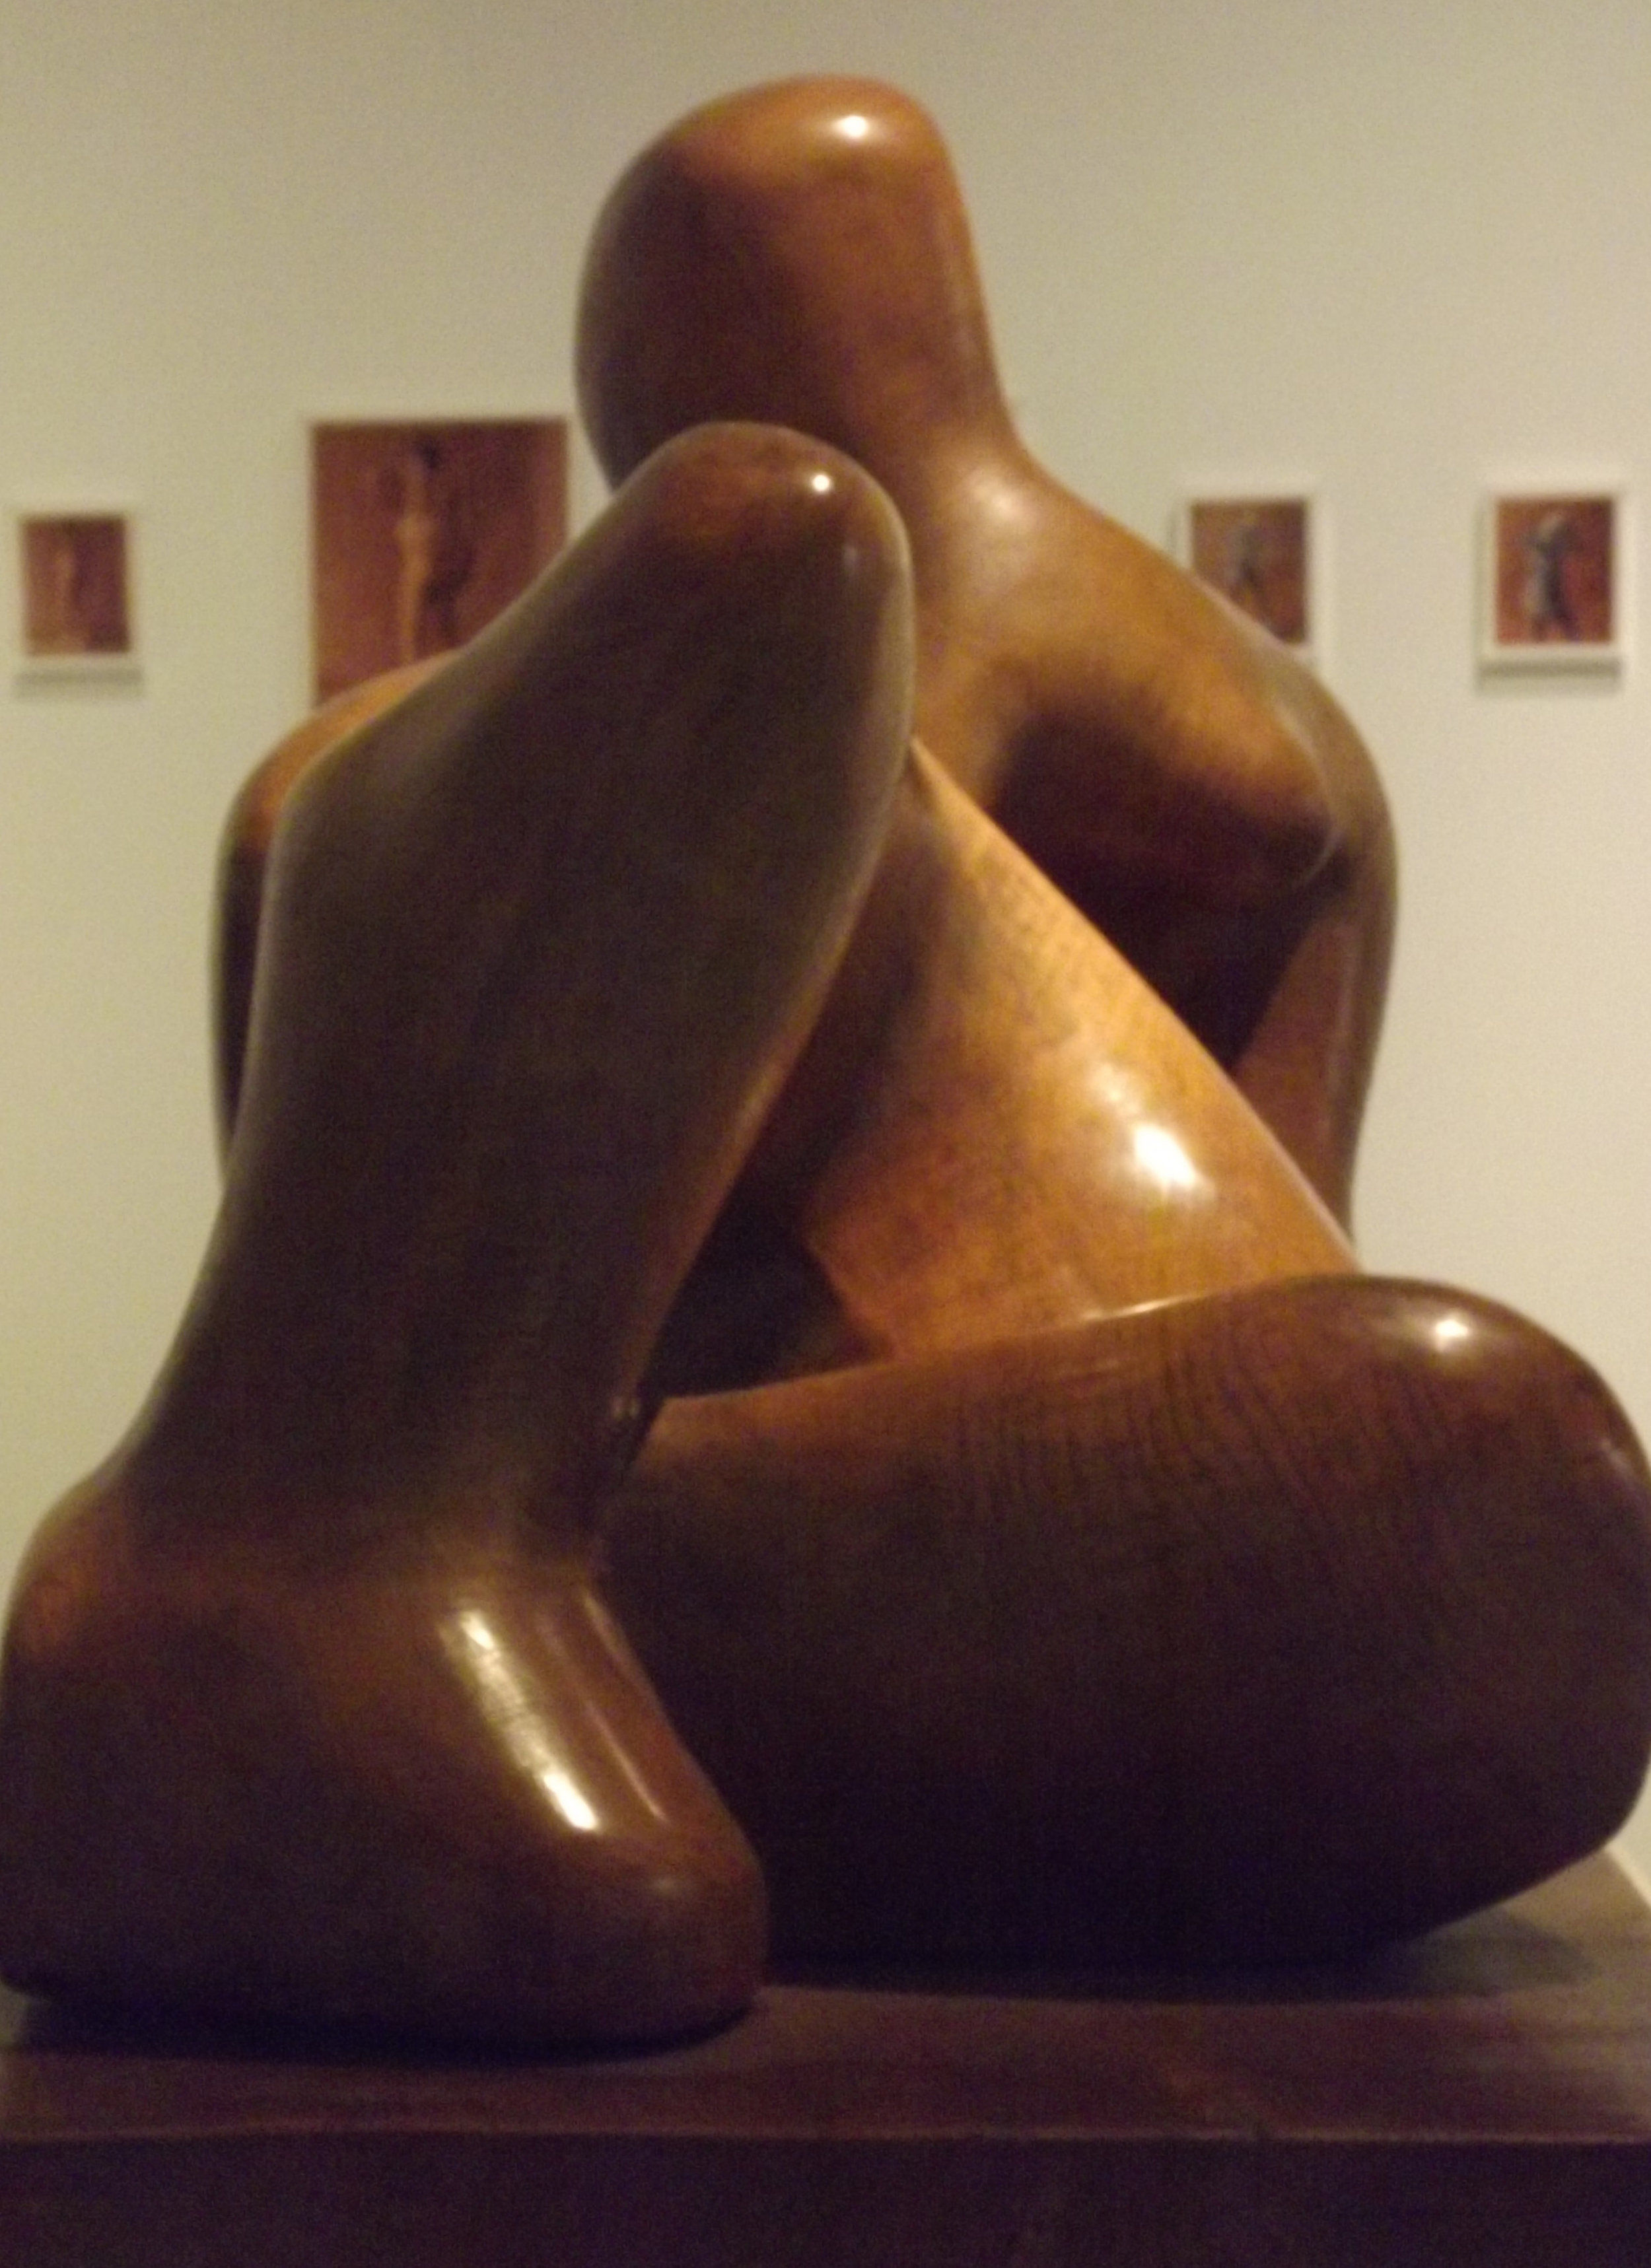 Reclining Figure , 1936 by Henry Moore.